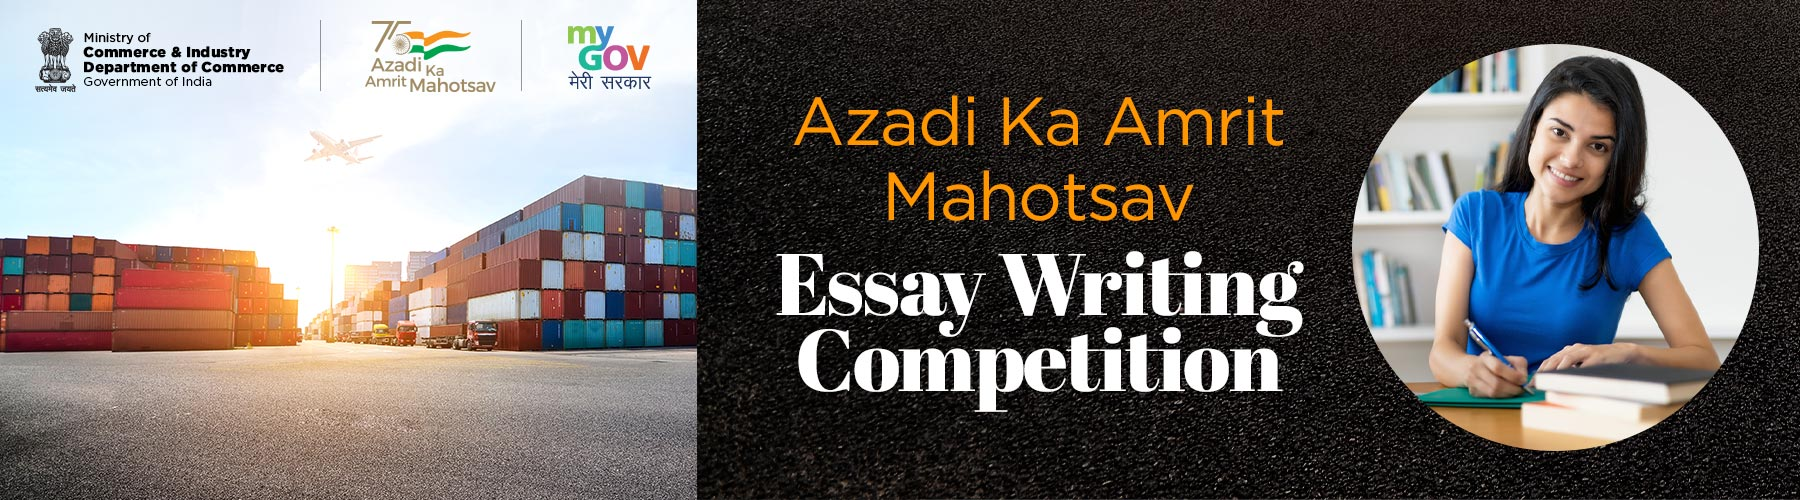 Online Essay Writing Competition